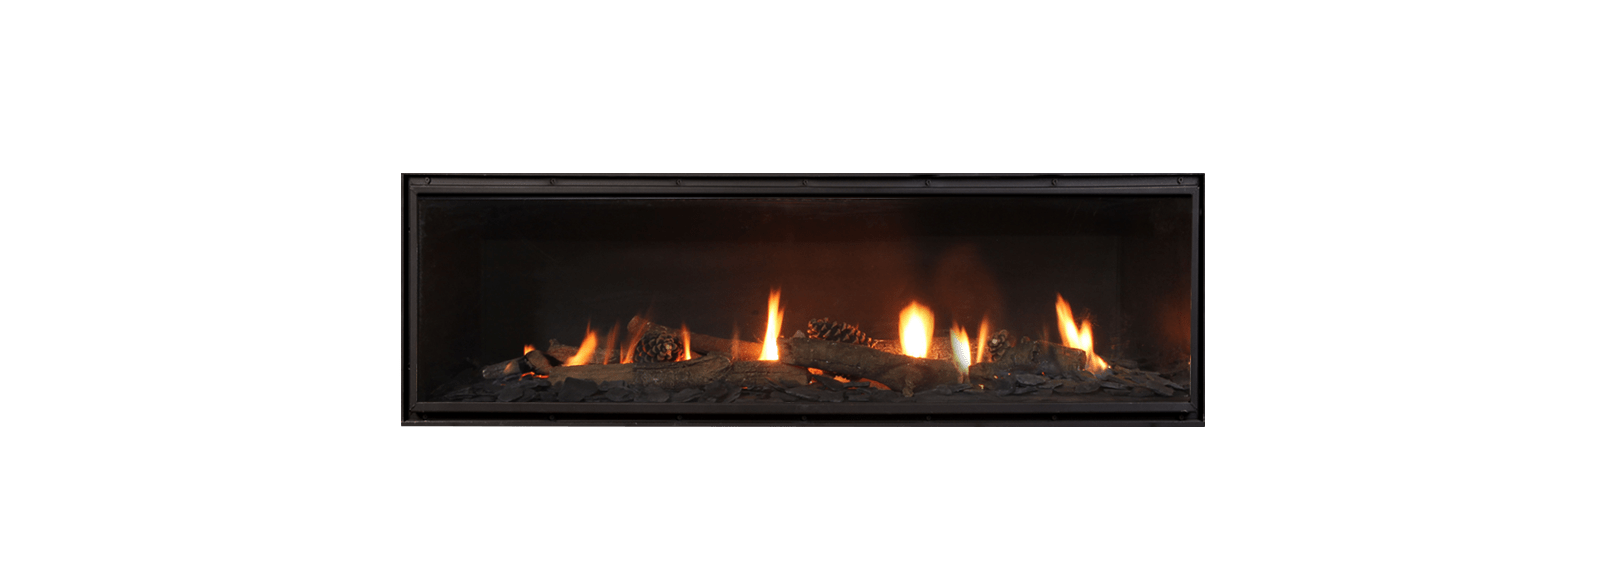 How Much Do Gas Fireplace Logs Cost Escea Dx1500 Dx1000 Single Sided Ducted Gas Fireplaces